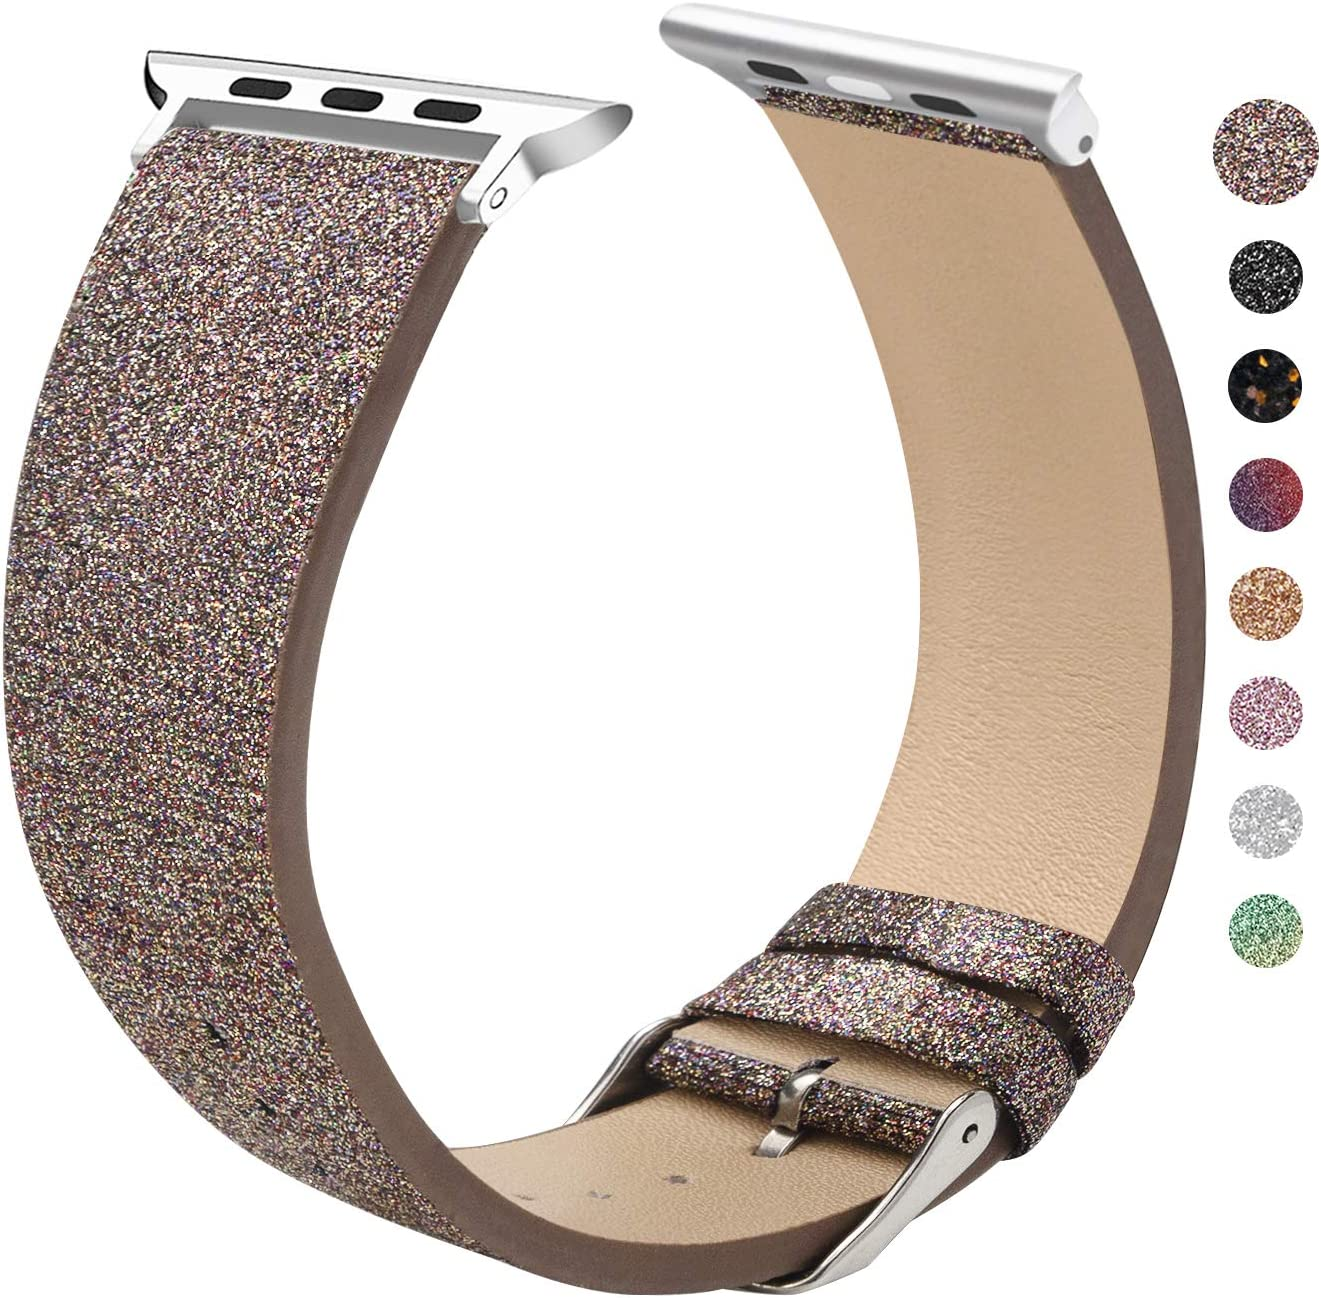 EurCross Watch Band Compatible with Apple Watch 38mm 40mm Shiny Strap Replacement Wristband for Women Glitter Bands Compatible with iWatch Series 5/4/3/2/1 (Coffee 38mm/40mm)